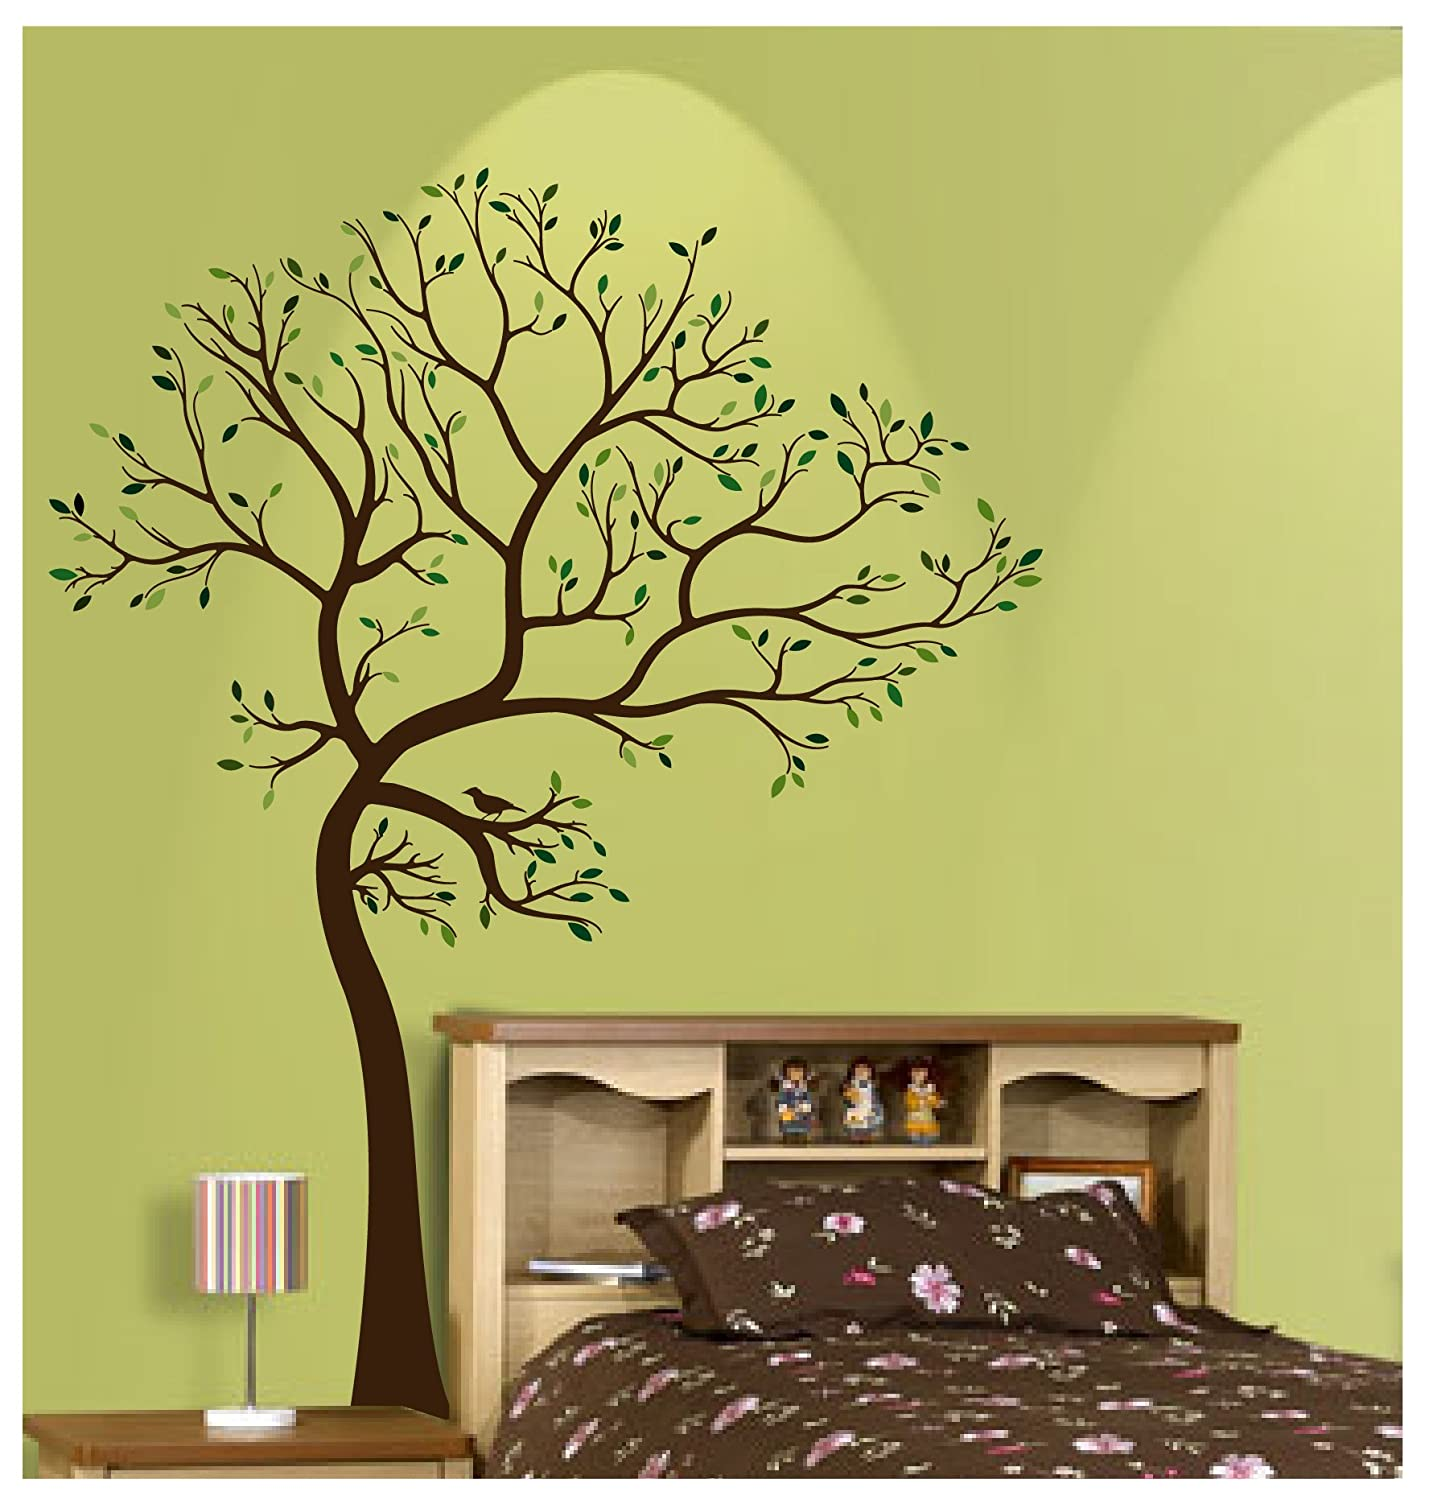 Tree wall decals for nursery baby gifts and reviews for Big tree with bird wall decal deco art sticker mural